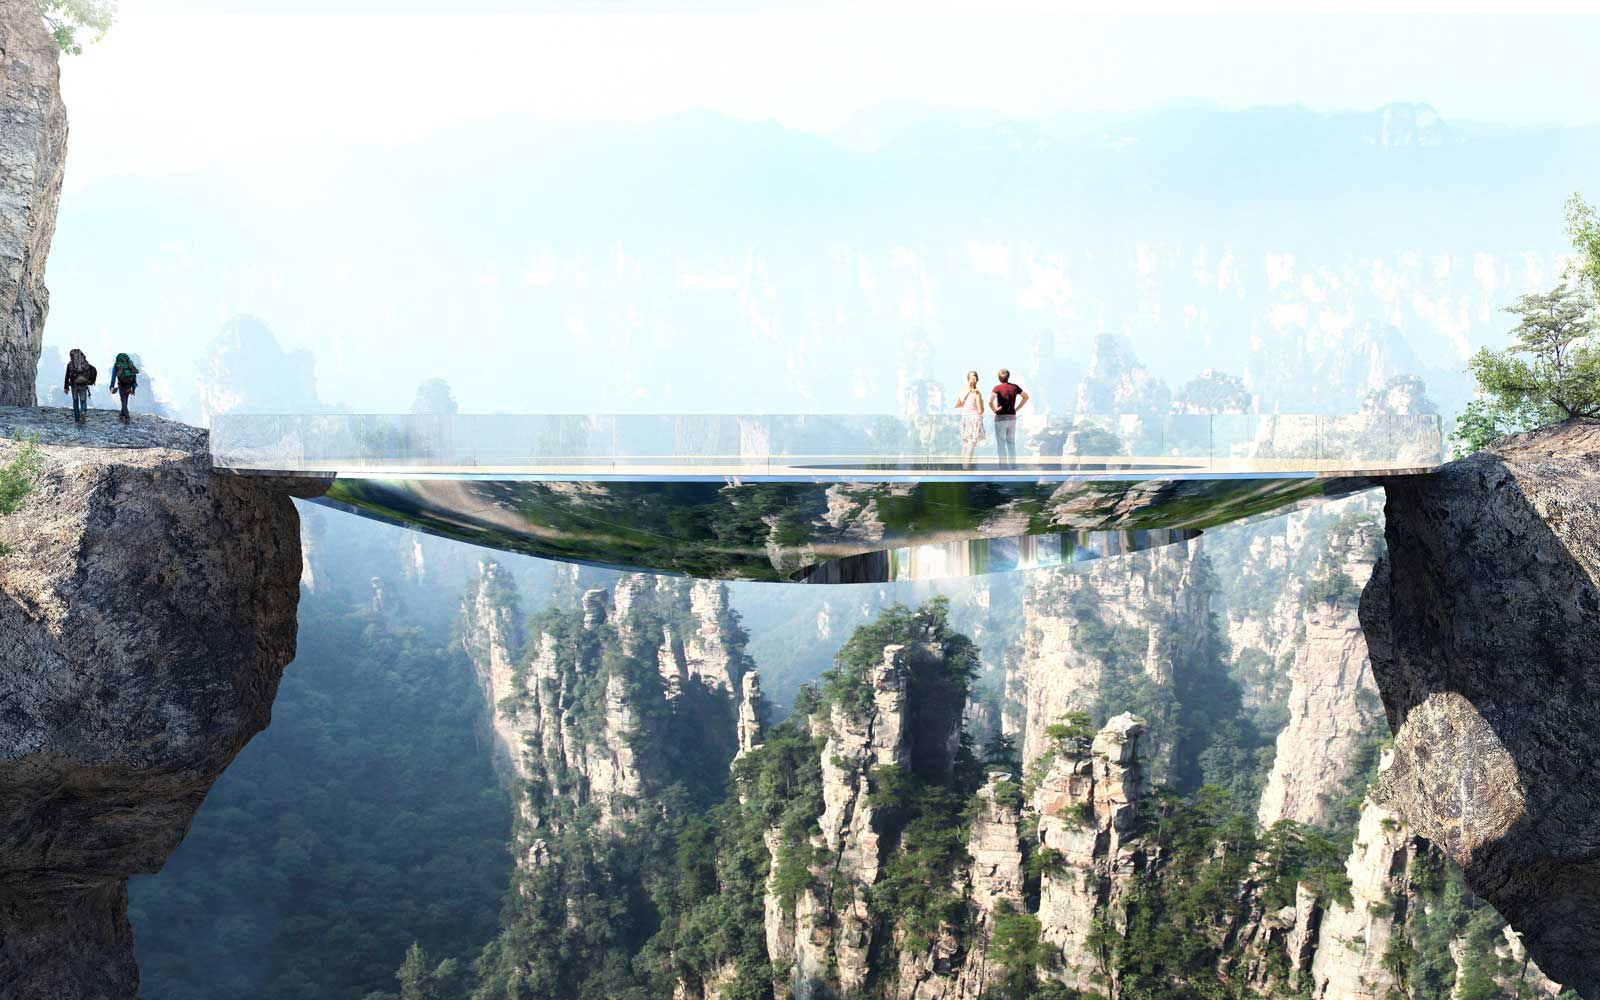 This Invisible Glass Bridge in China Is a Thrillseeker's Dream Come True